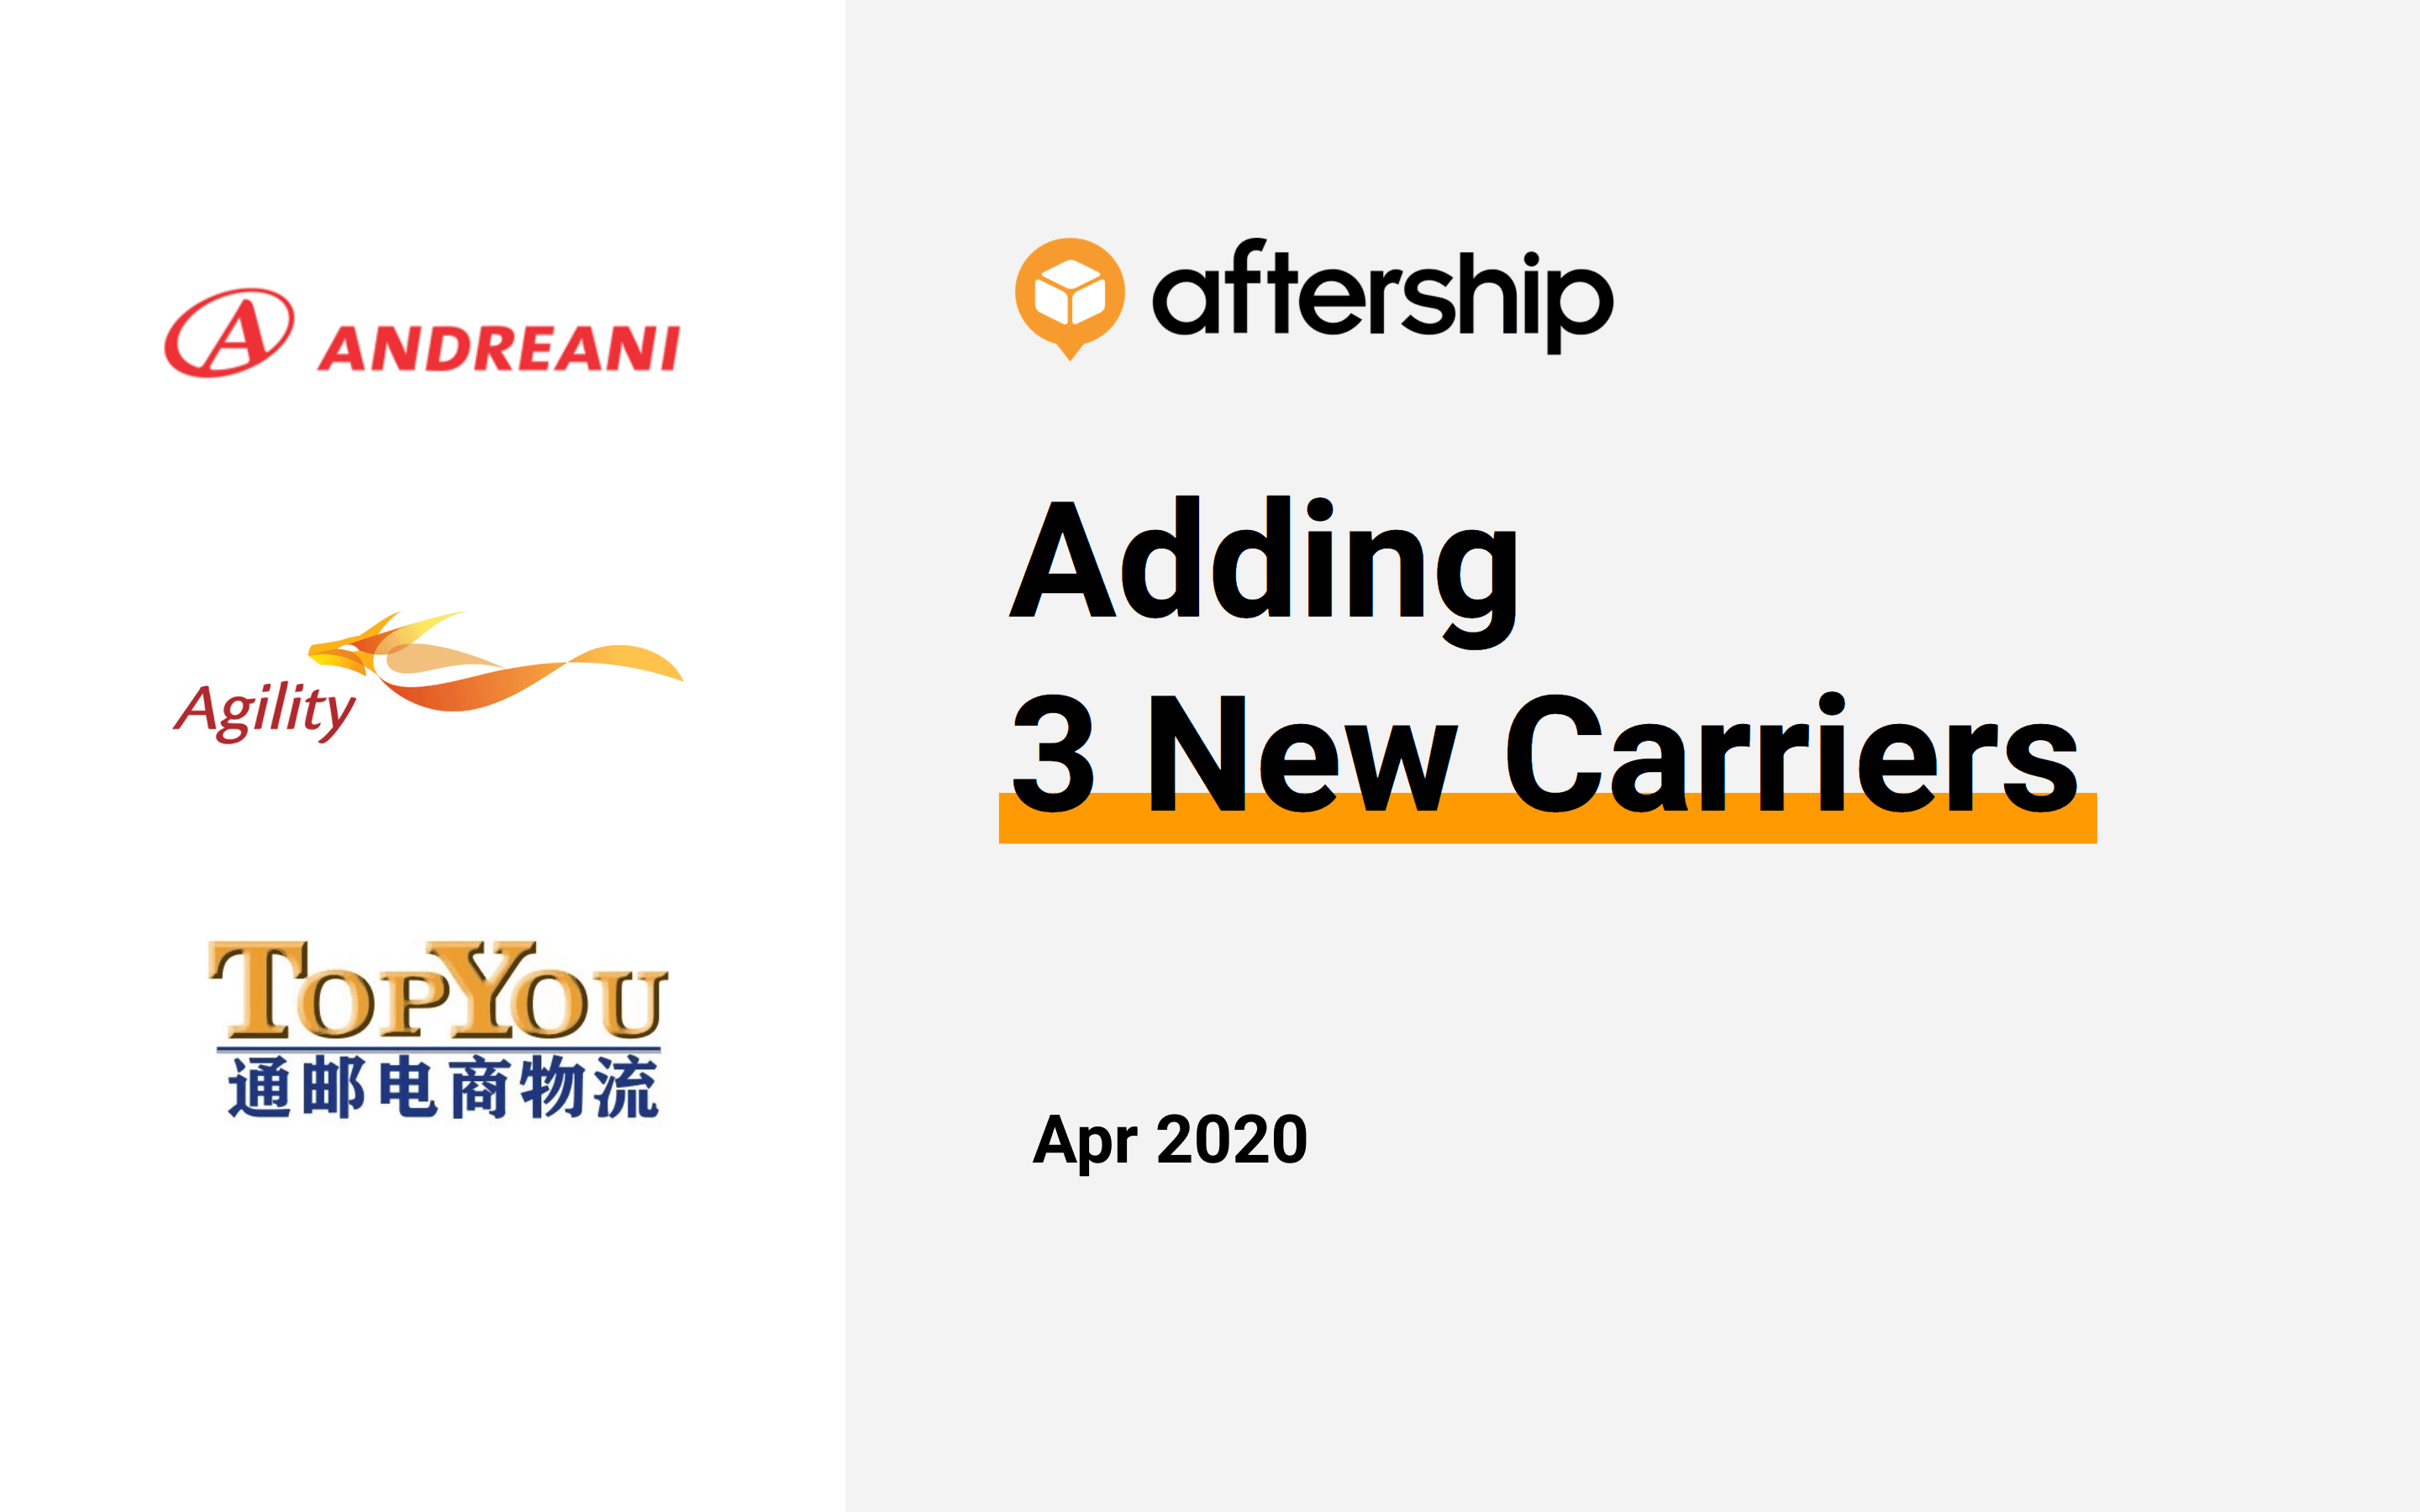 AfterShip added 3 new carriers this week (20 Apr 2020 to 24 Apr 2020)